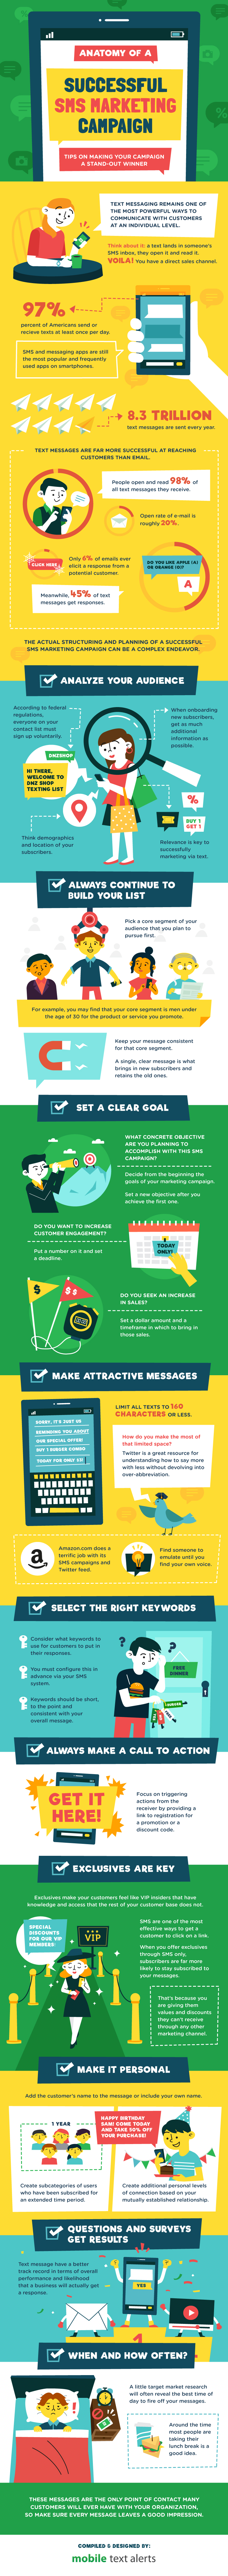 An SMS Text Message Marketing Campaign How-to for Your Small Business